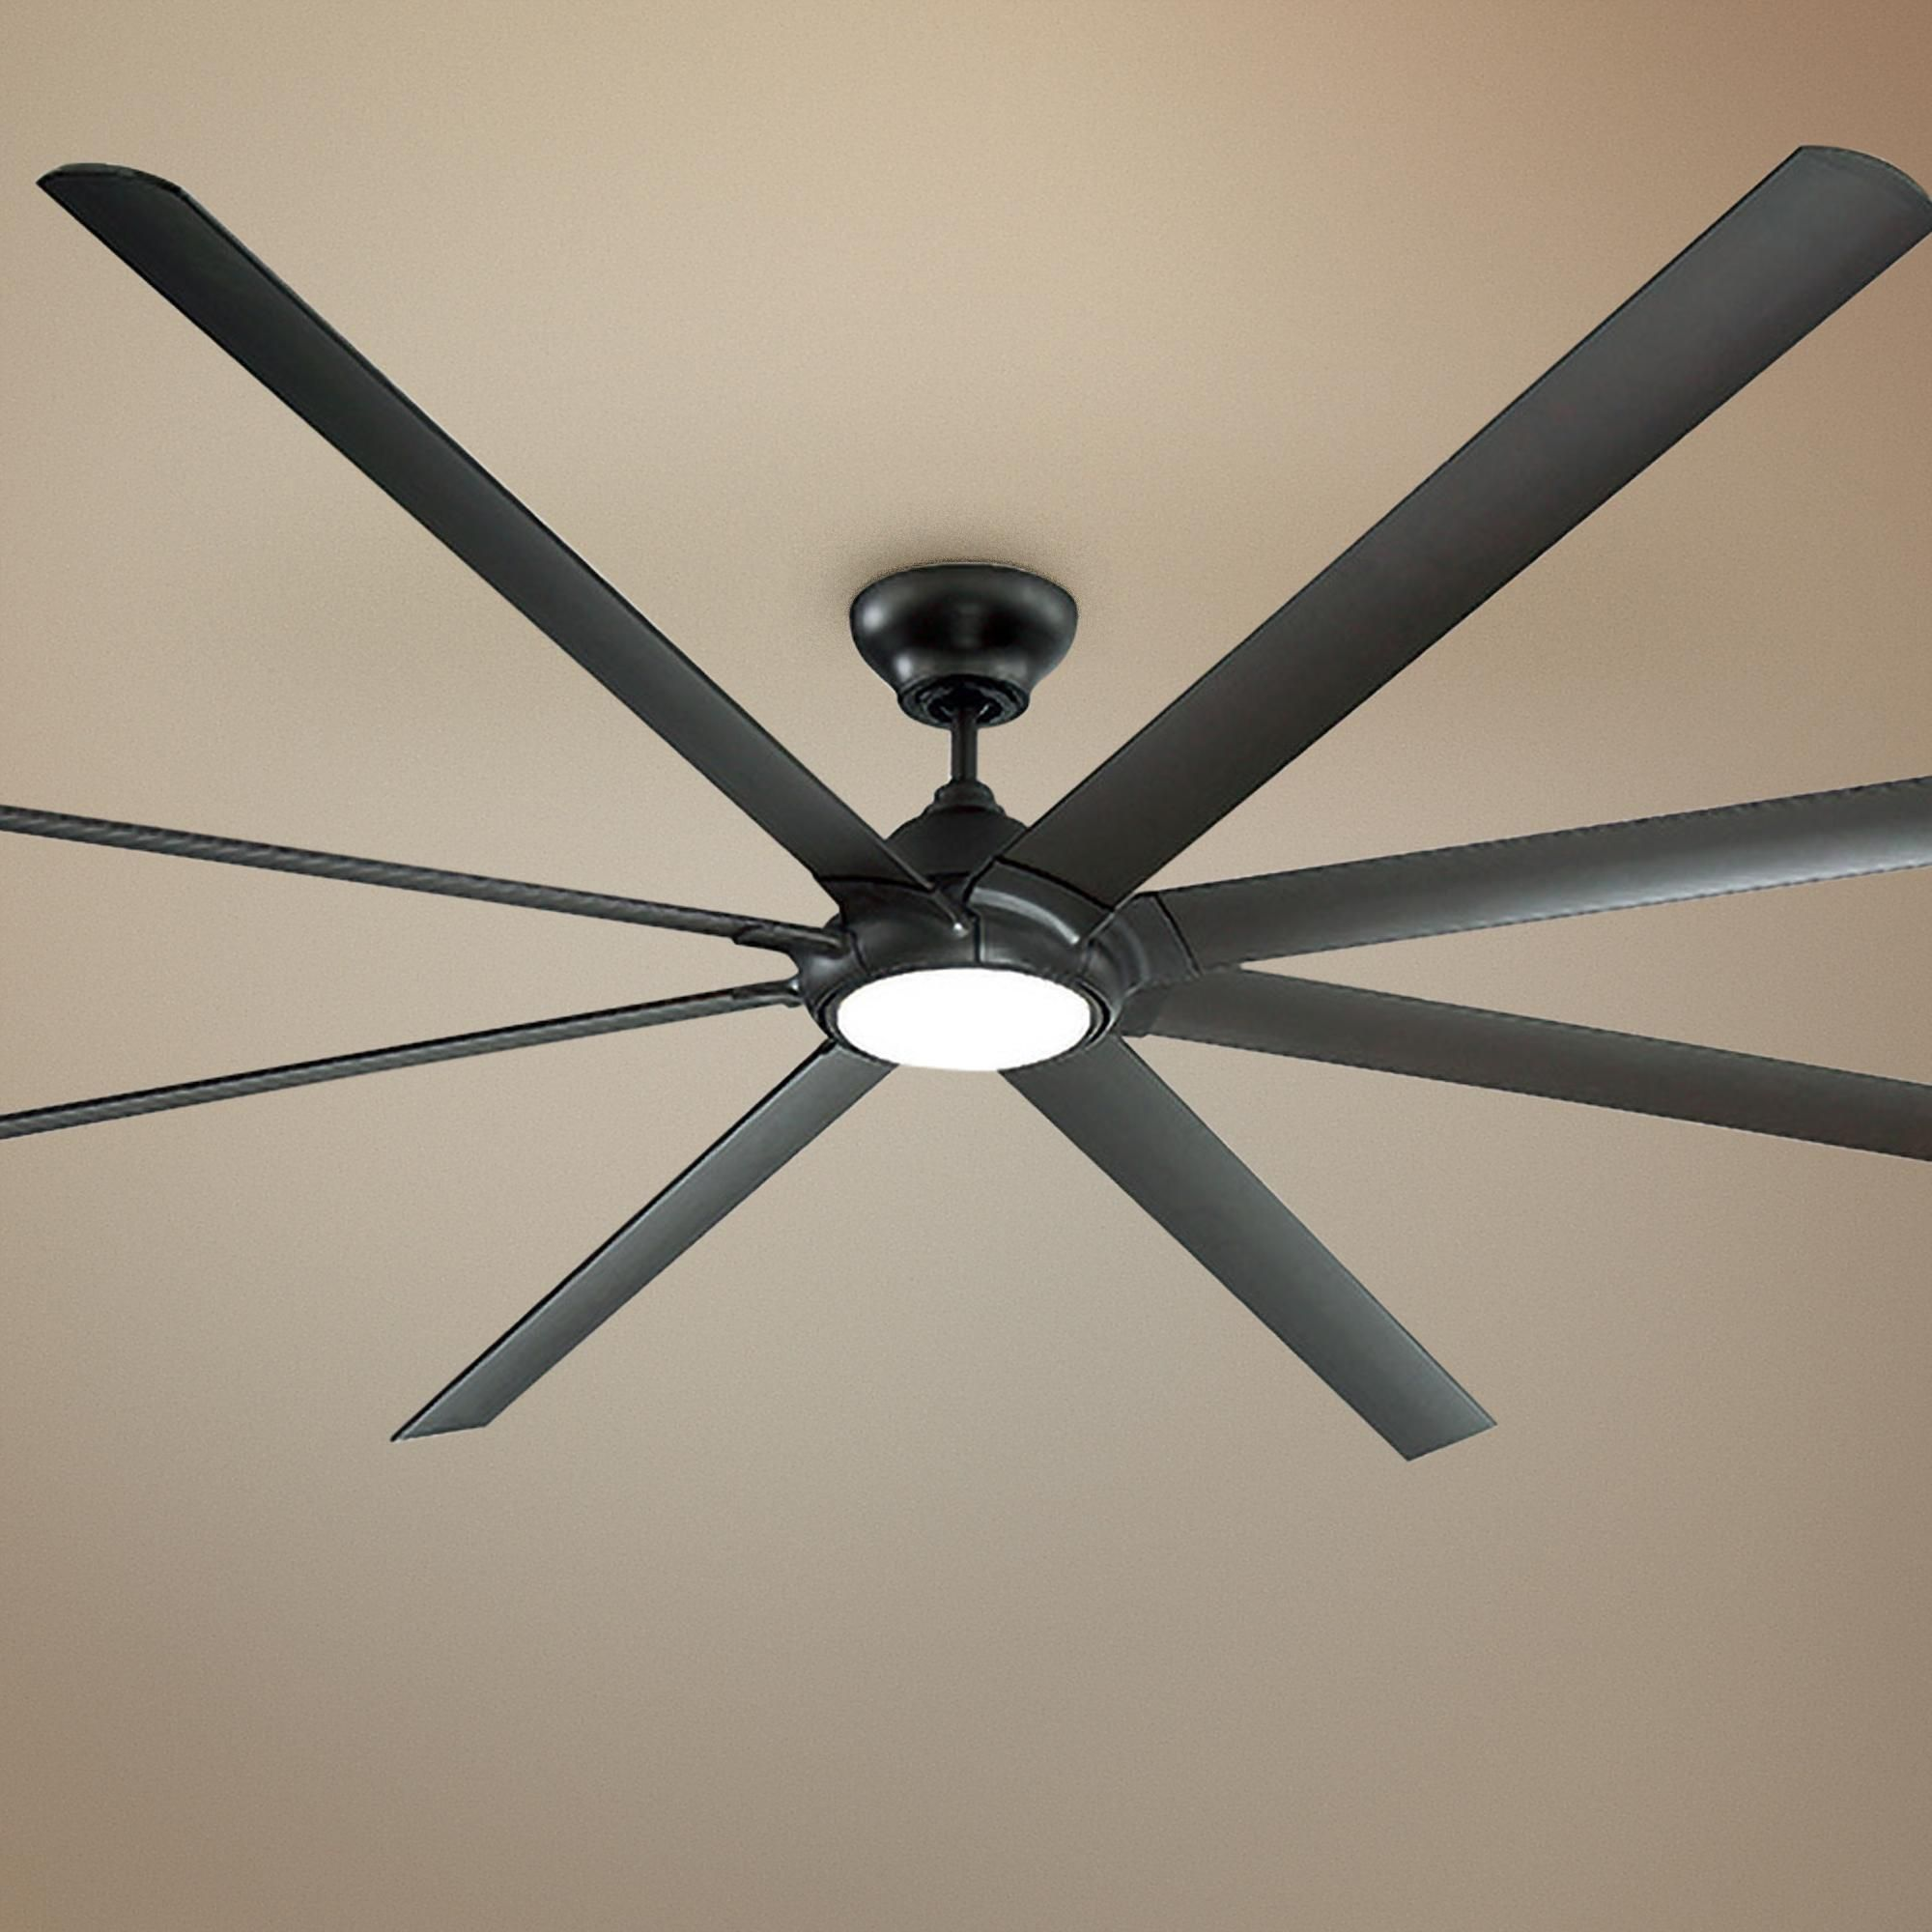 Ceiling Fans 120 Modern Forms Hydra Bronze Led Wet Ceiling Fan In 2020 Ceiling Fan Bronze Ceiling Fan Ceiling Fan With Light